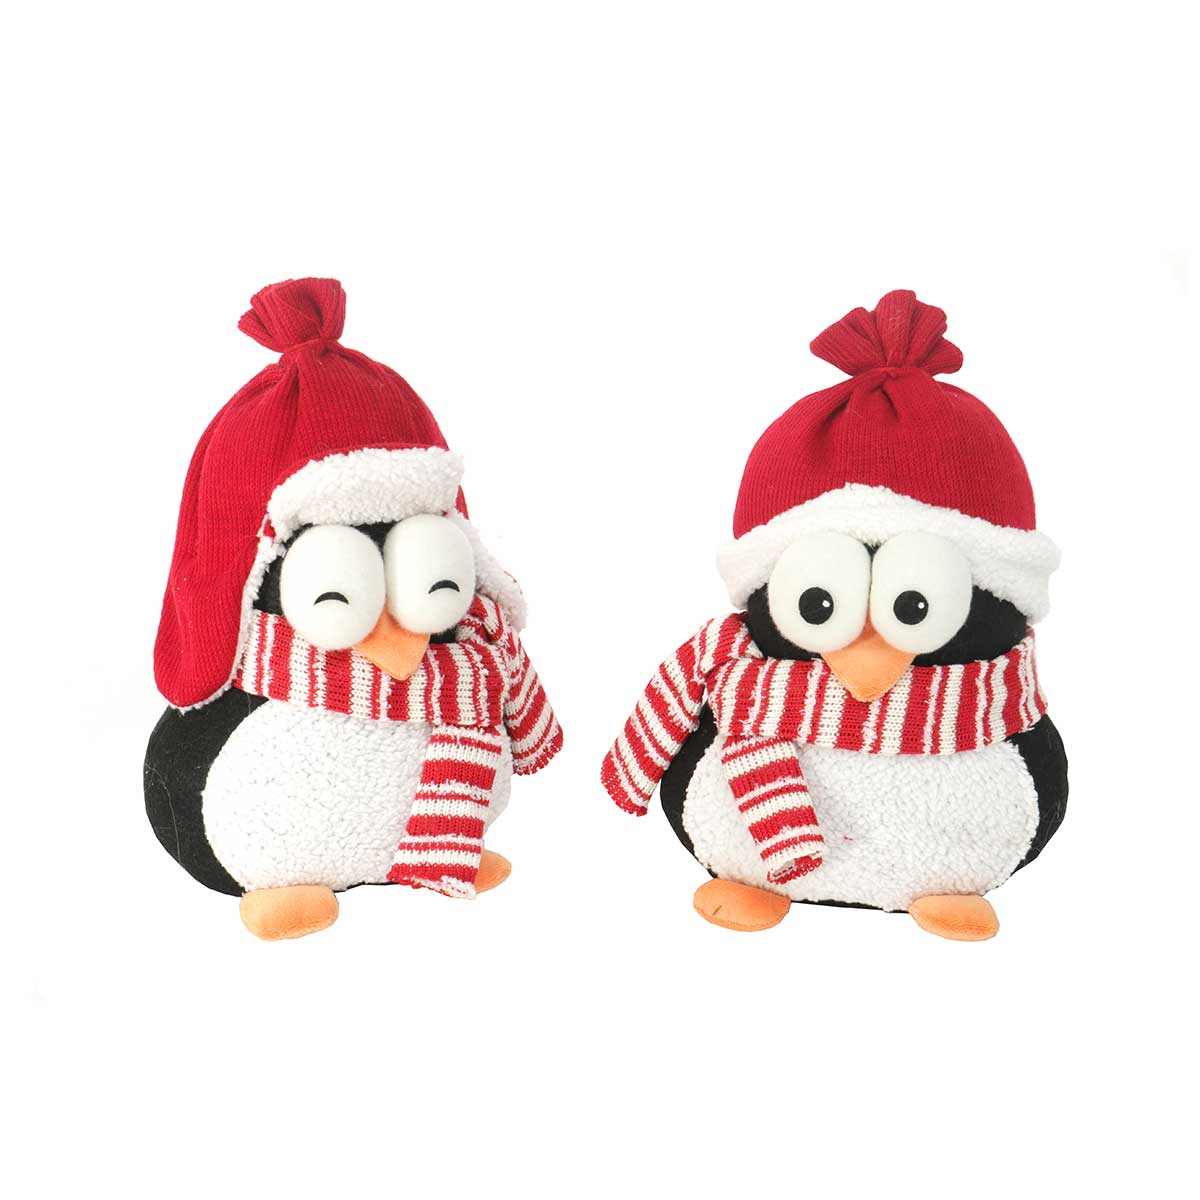 "PENGUIN TWINS 2 ASSORTED 10"" v22"